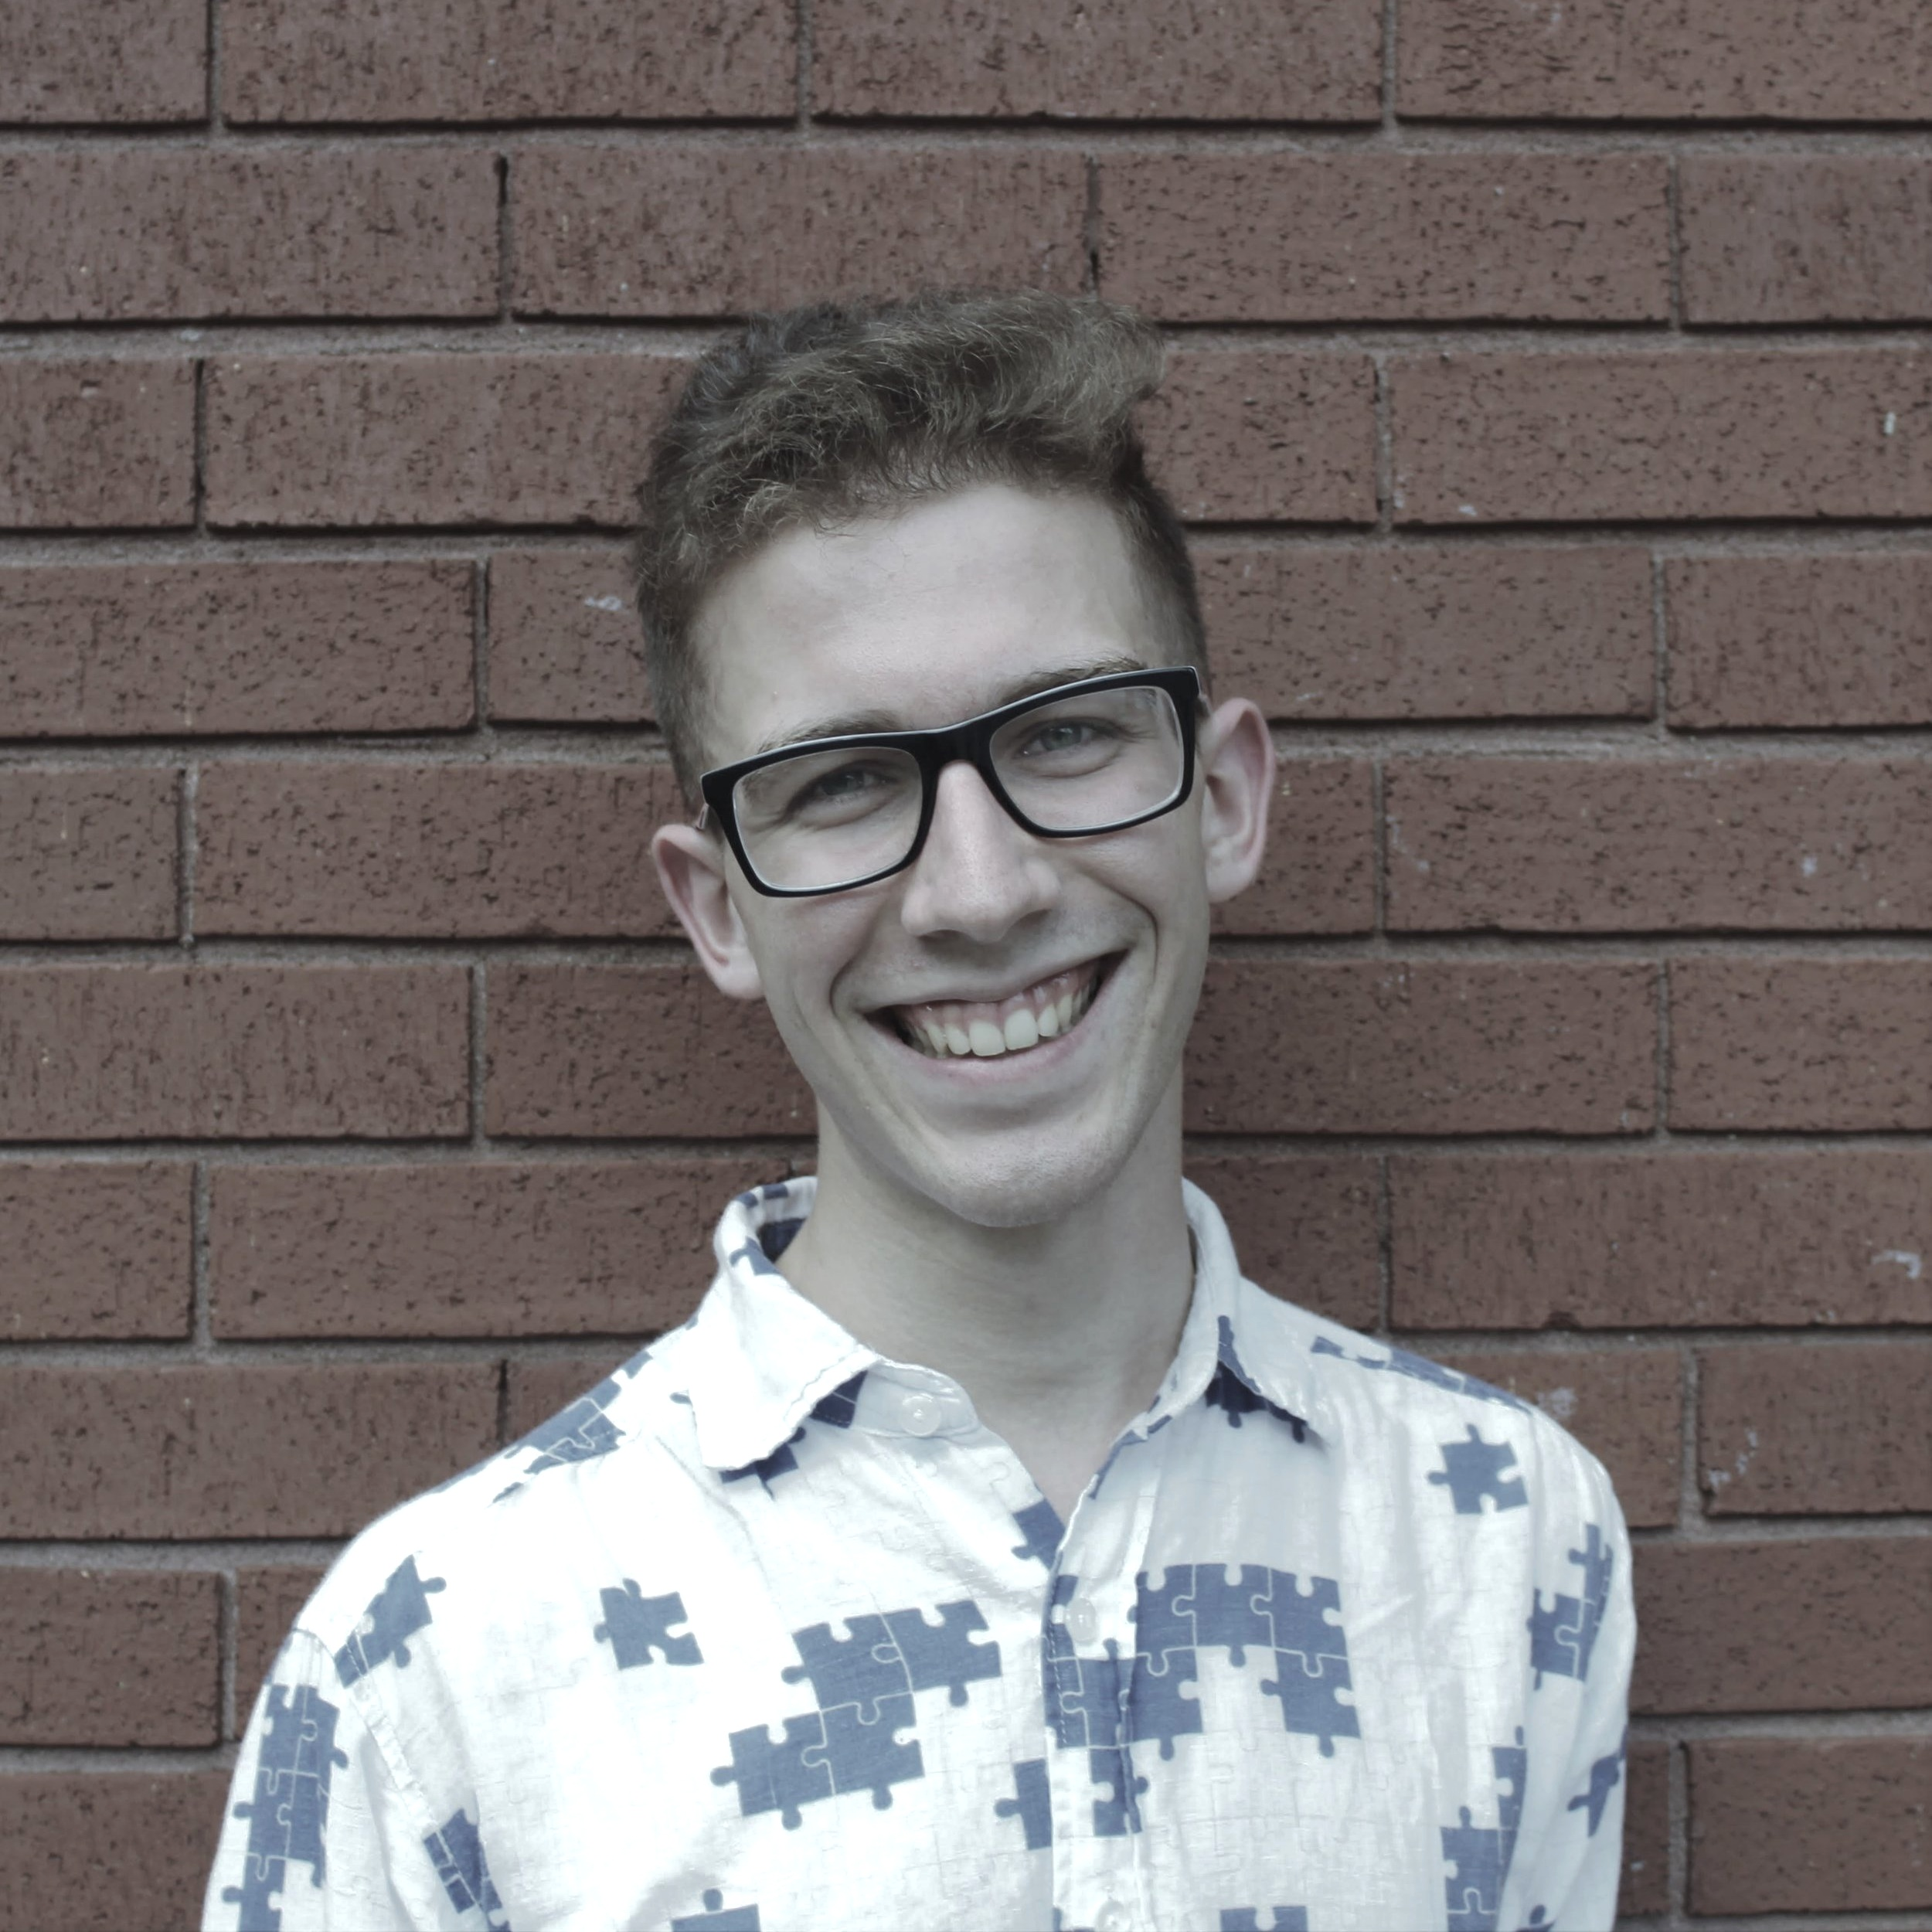 PATRICK LYNN  STAGE MANAGER    Bio:  Patrick grew up in Fredericton, NB, but he moved to Toronto in 2017 to pursue an education in the performing arts. He will be entering his third year at Ryerson University, School of Performance: Production and Design in September specialising in management.  Select stage management credits include: Macbeth: More than Man, Panoply Classical Collective (2019);  Theatre New Brunswick Theatre School seasons (2016-2018); It Happened One Night in a Dairy  Queen Parking Lot, Tarragon Theatre Education Department (2018); Evita, Blind Faith Productions (2016).